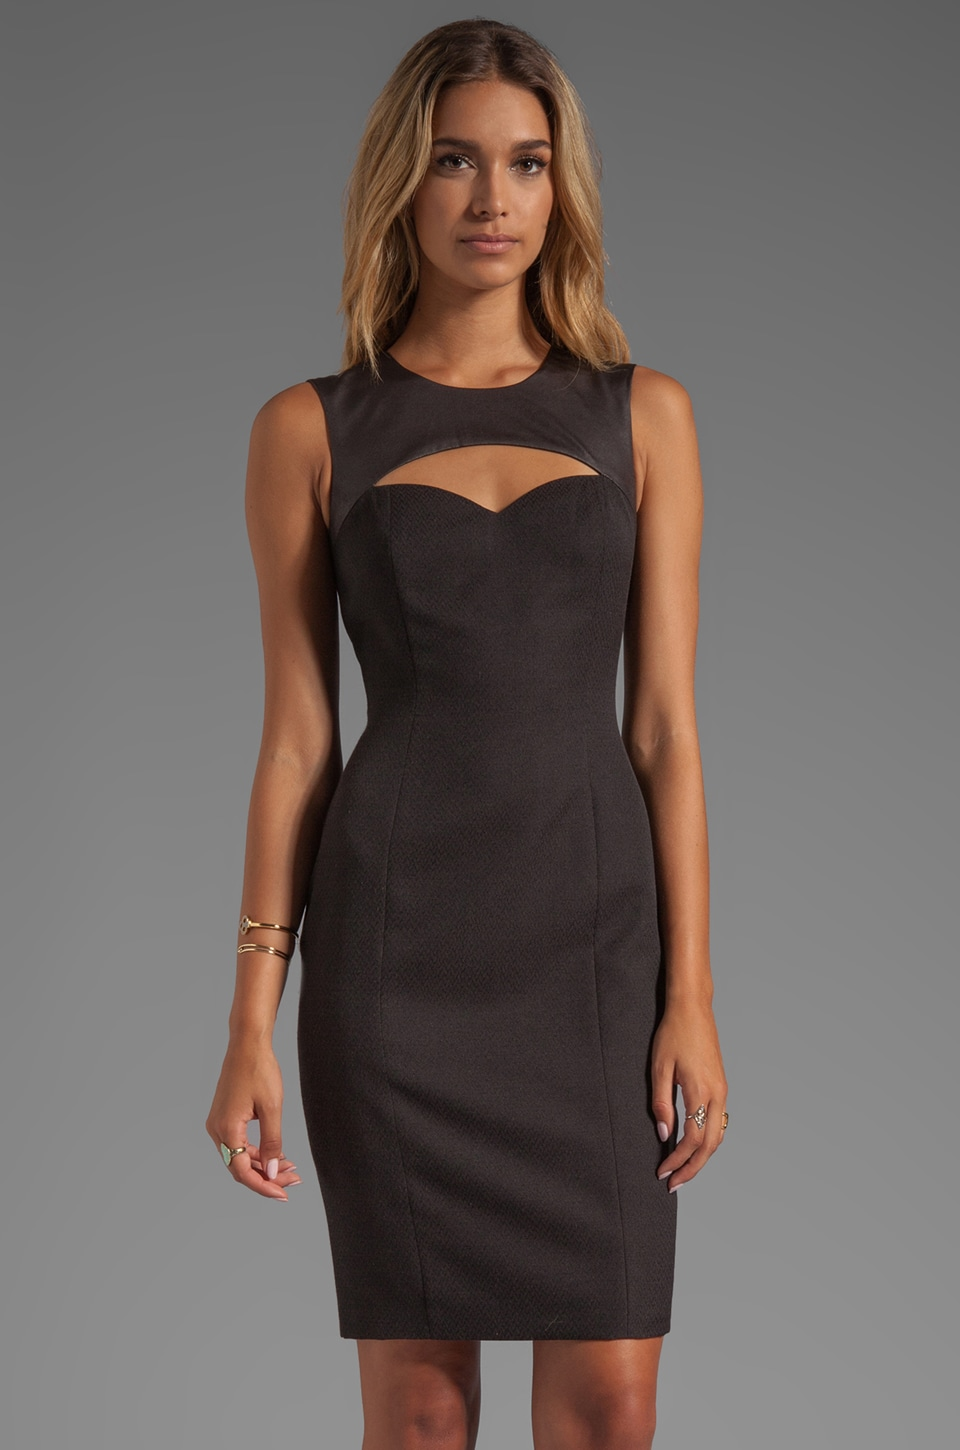 Jay Godfrey Strachan Jacquard Sheath Dress in Black